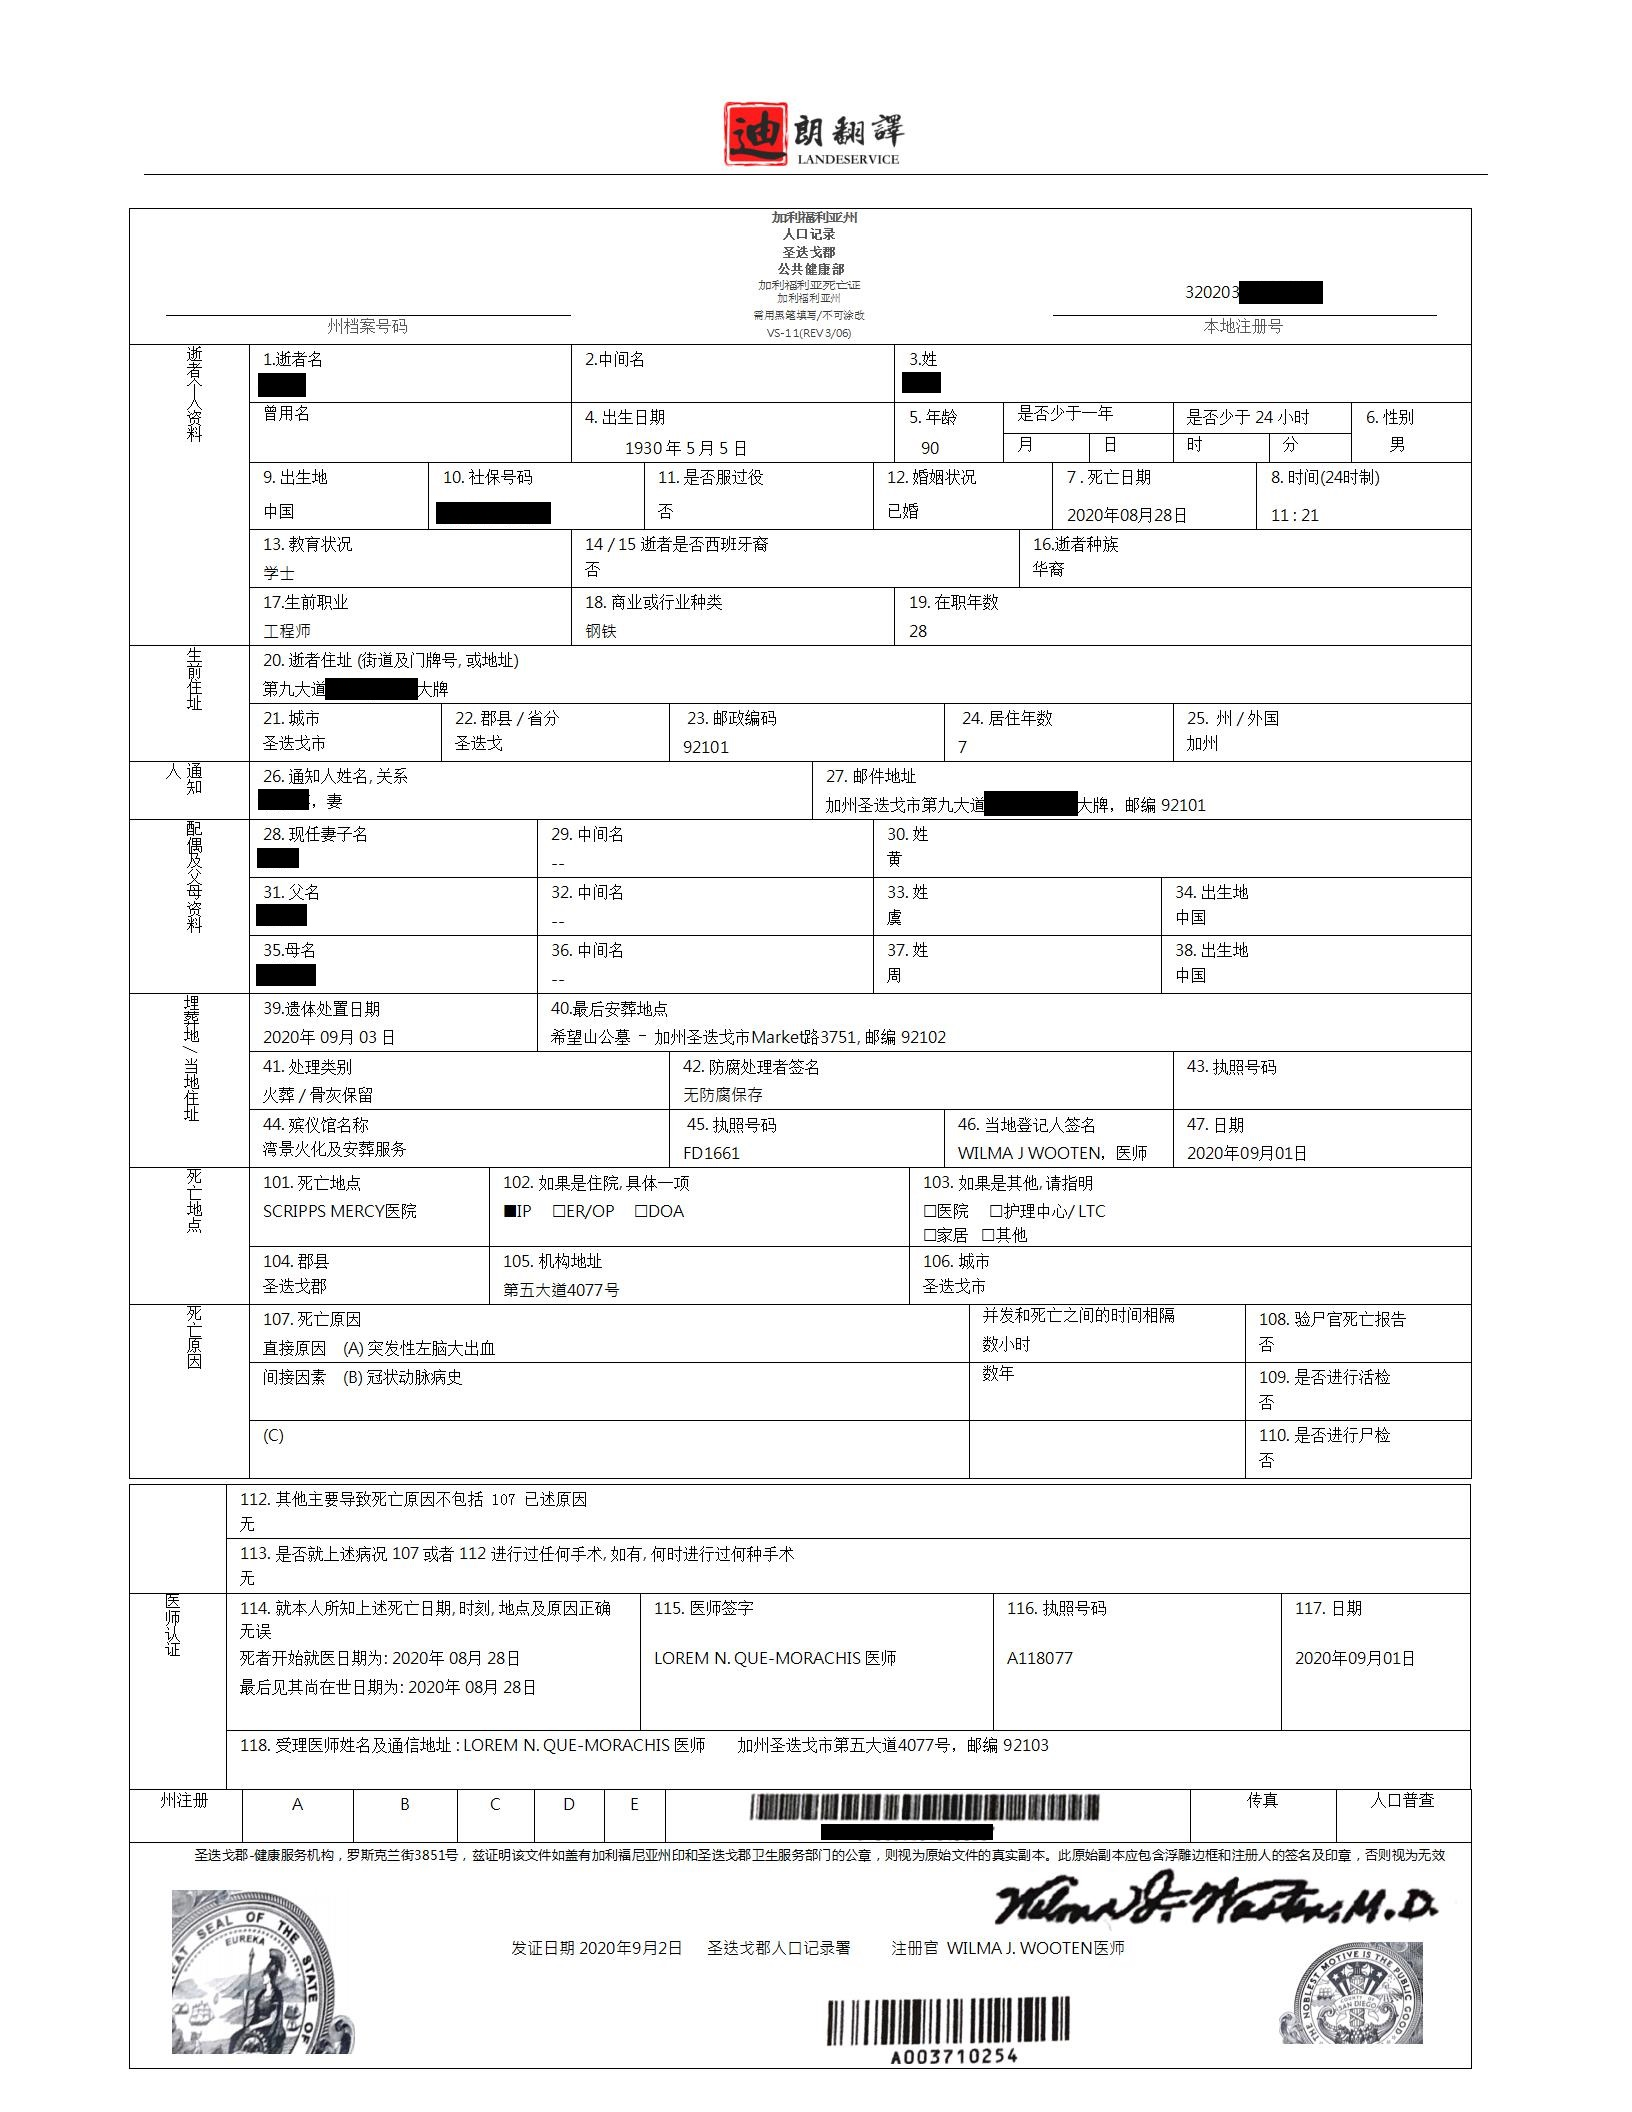 American San Diego Death Certificate Translation English to Chinese